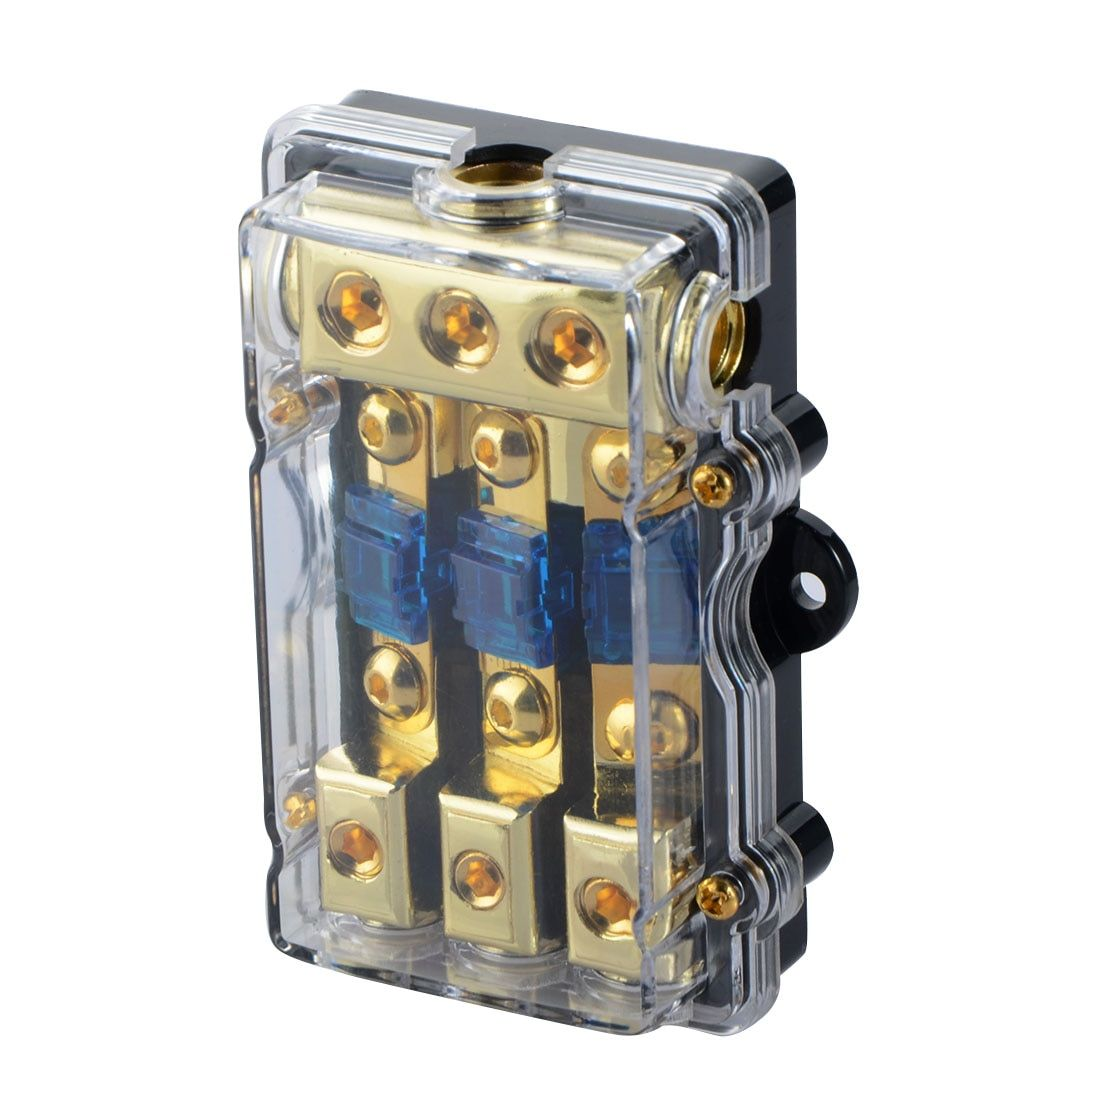 1PCS Universal Car Auto Vehicles Audio Amplifier 1 in 3 ways Out Fuse Holder Fuse Box